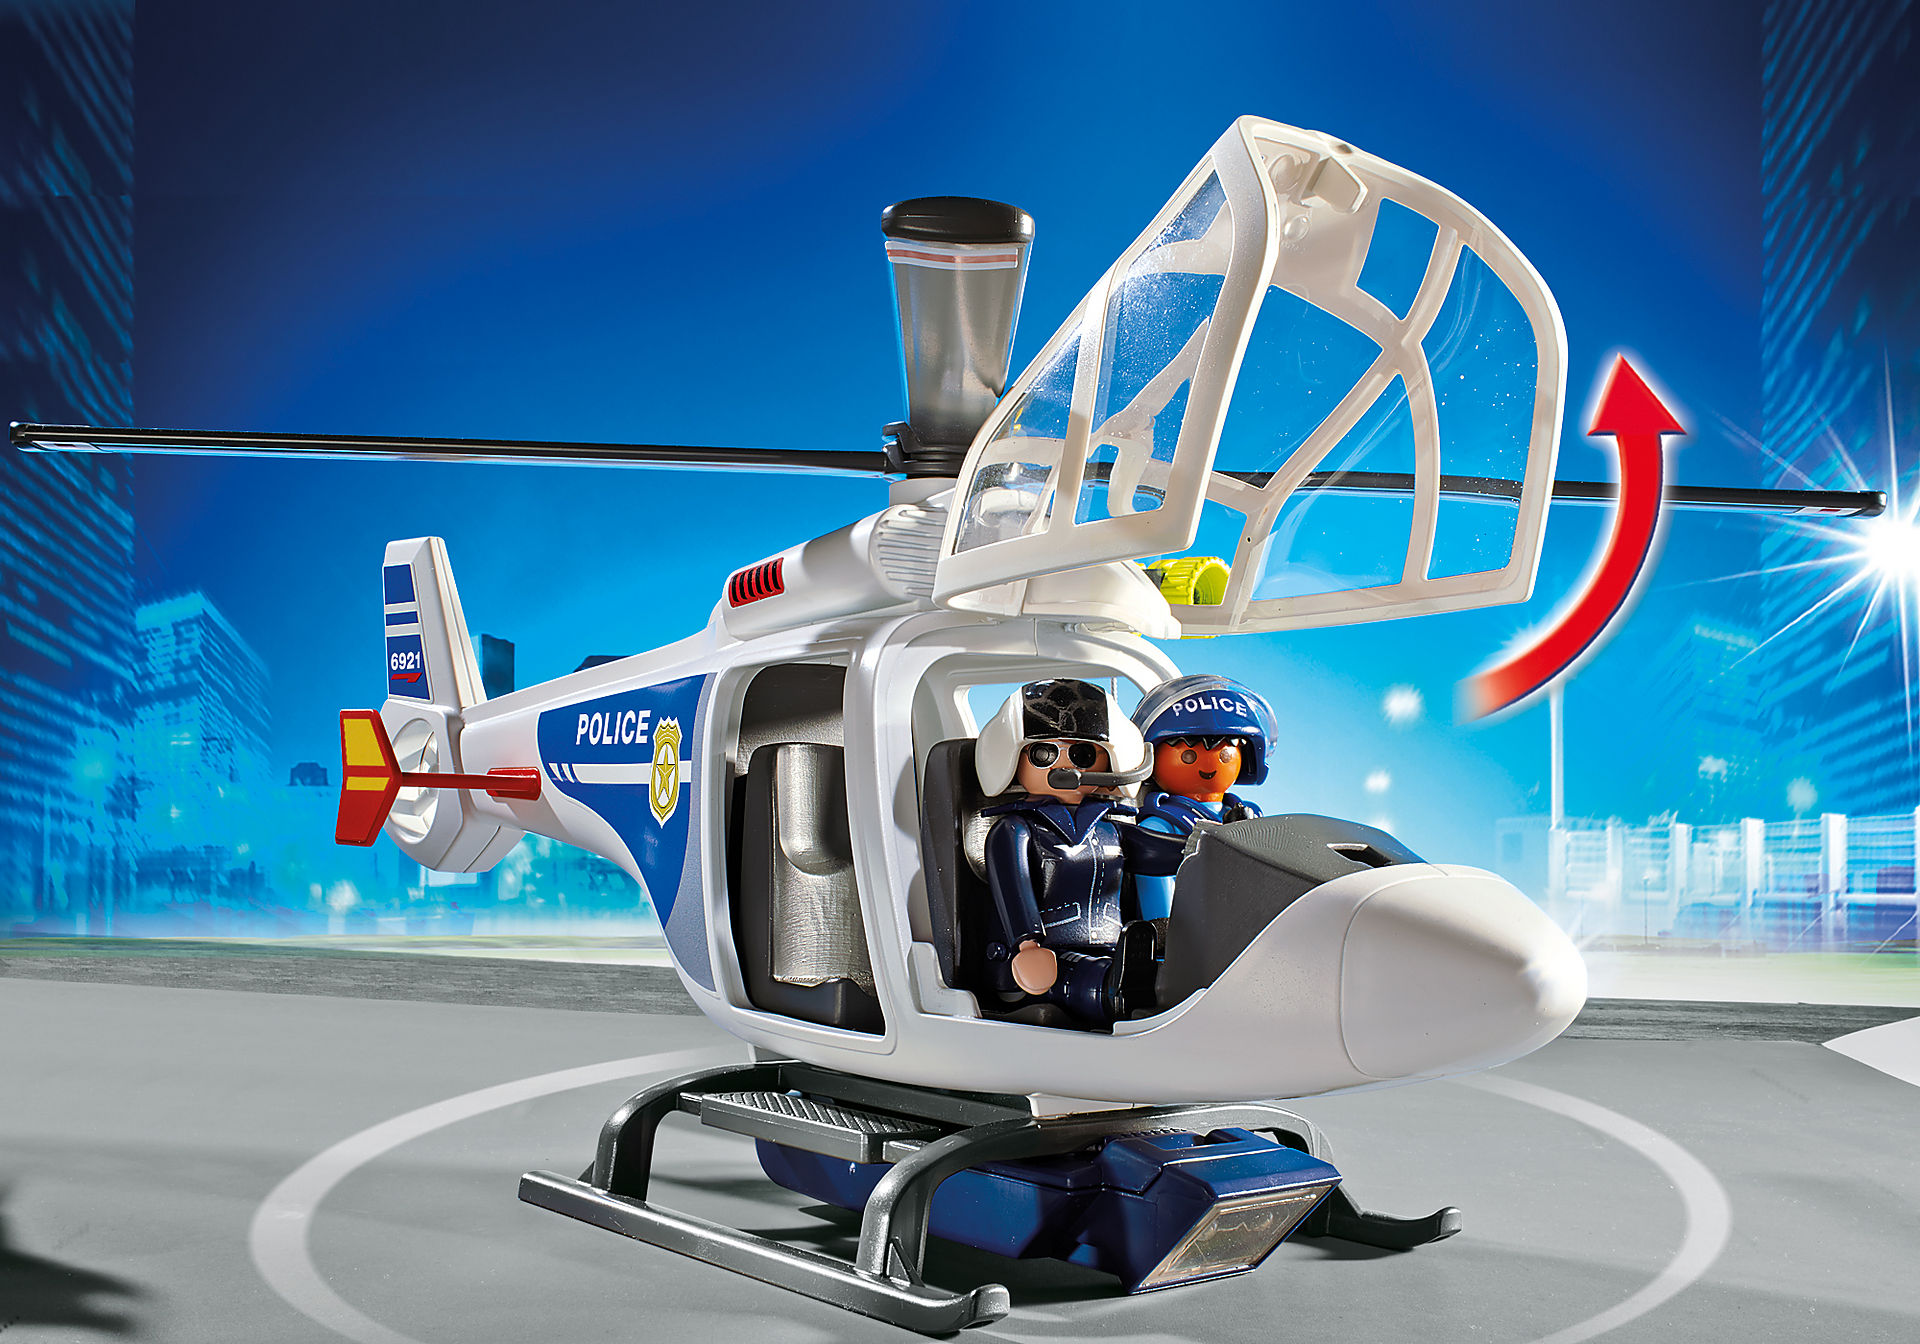 http://media.playmobil.com/i/playmobil/6921_product_extra1/Police Helicopter with LED Searchlight